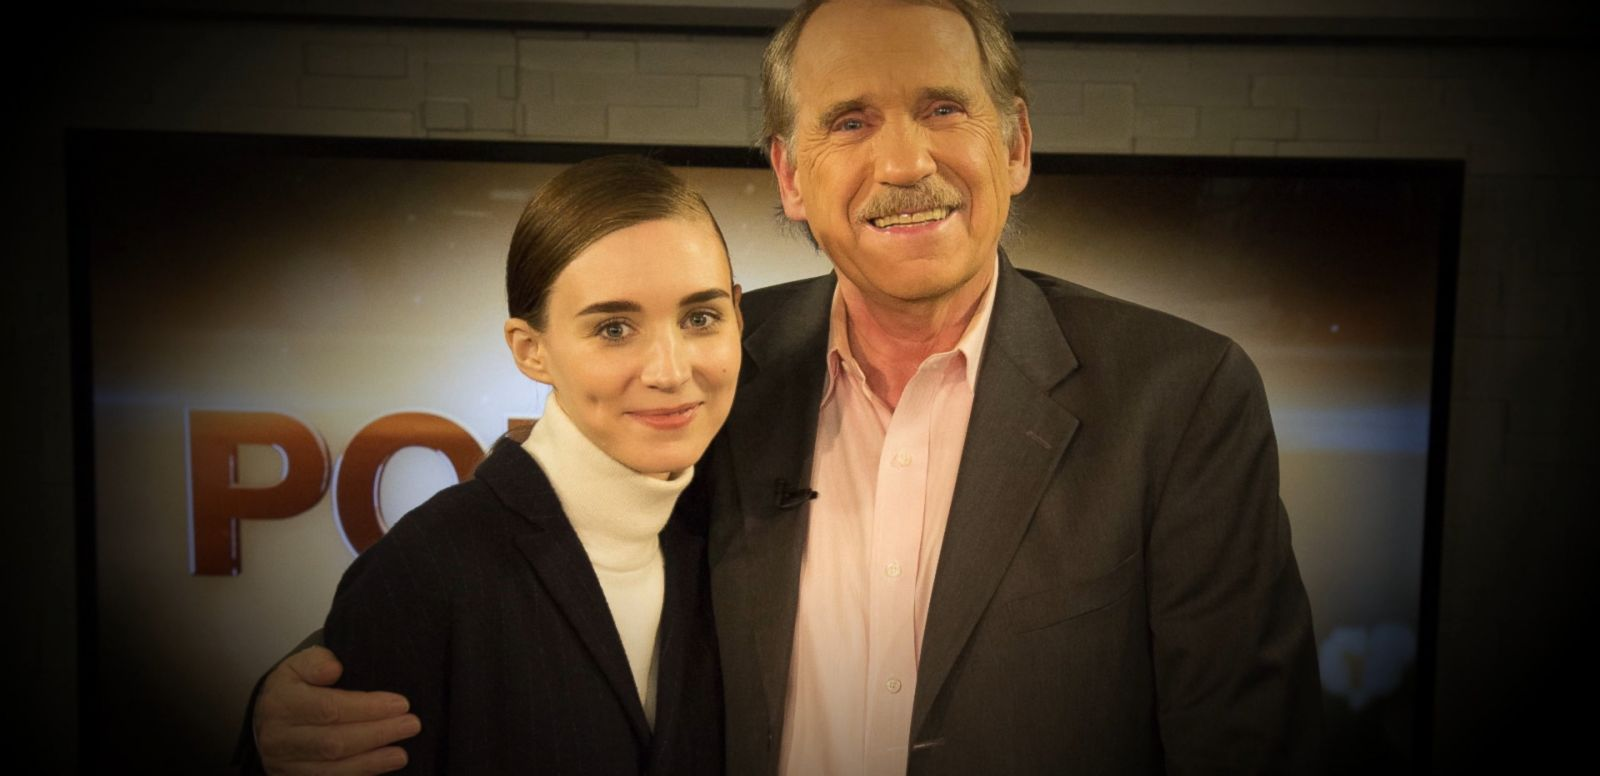 VIDEO: Oscar Nominee Rooney Mara Talks Cate Blachett and her role in 'Carol'